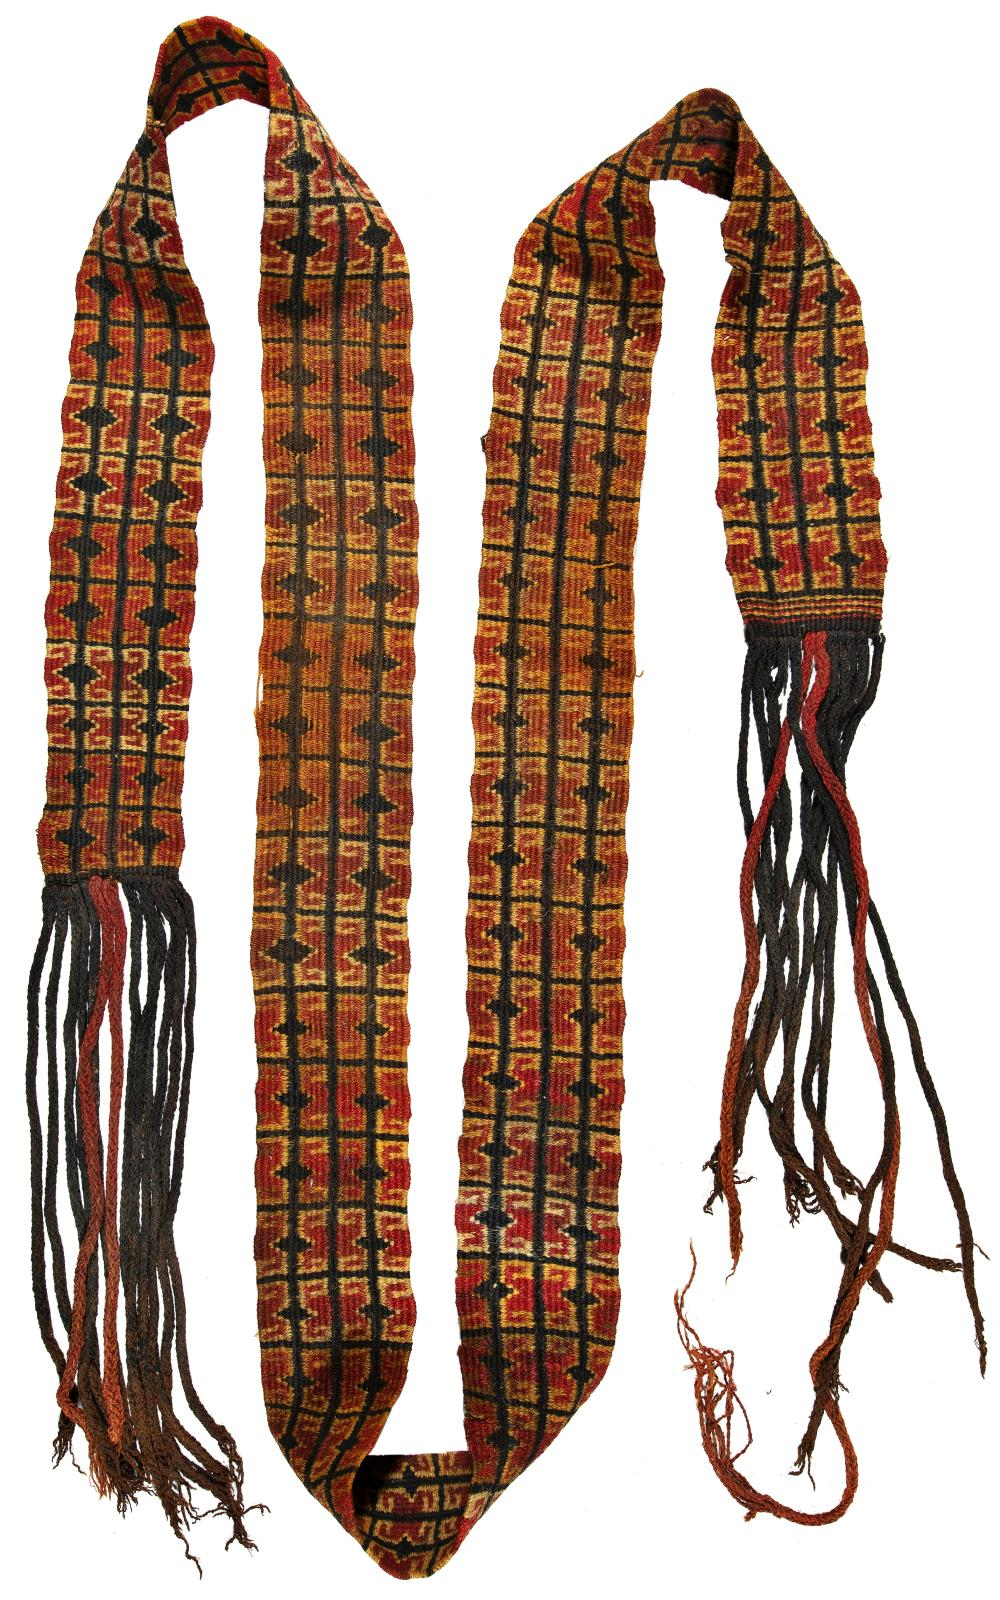 Belt in double weave technique with geometric representations